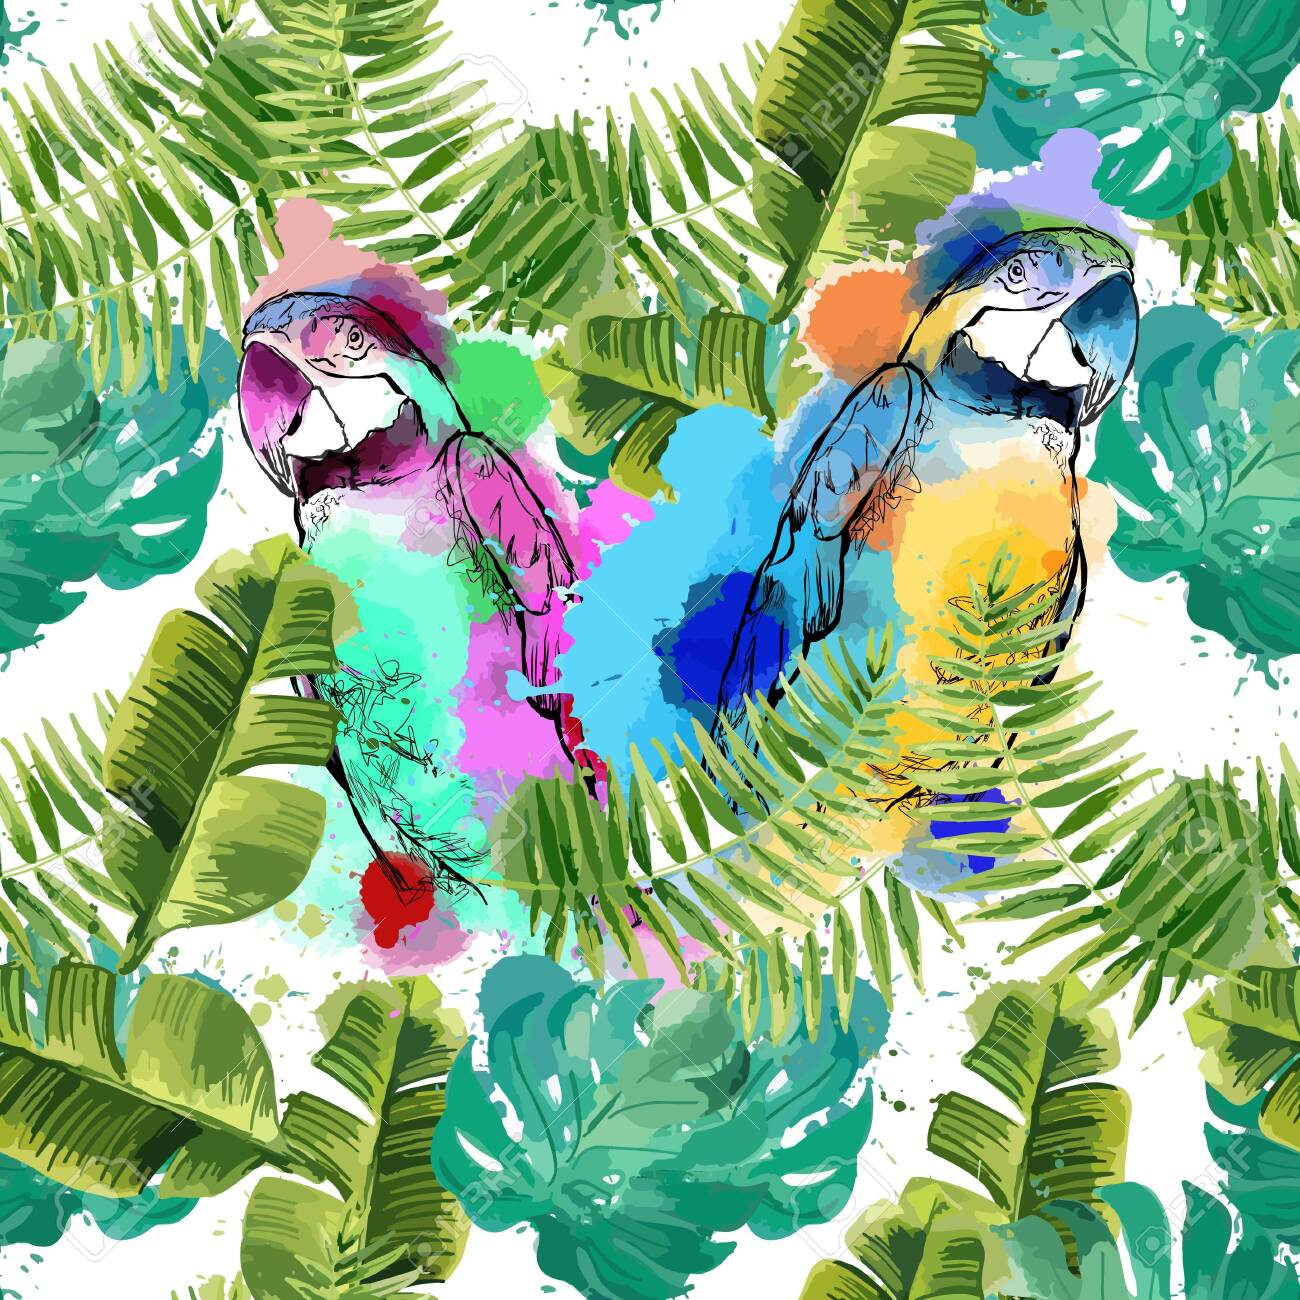 Exotic background with parrots and tropical leaves. - 133530472